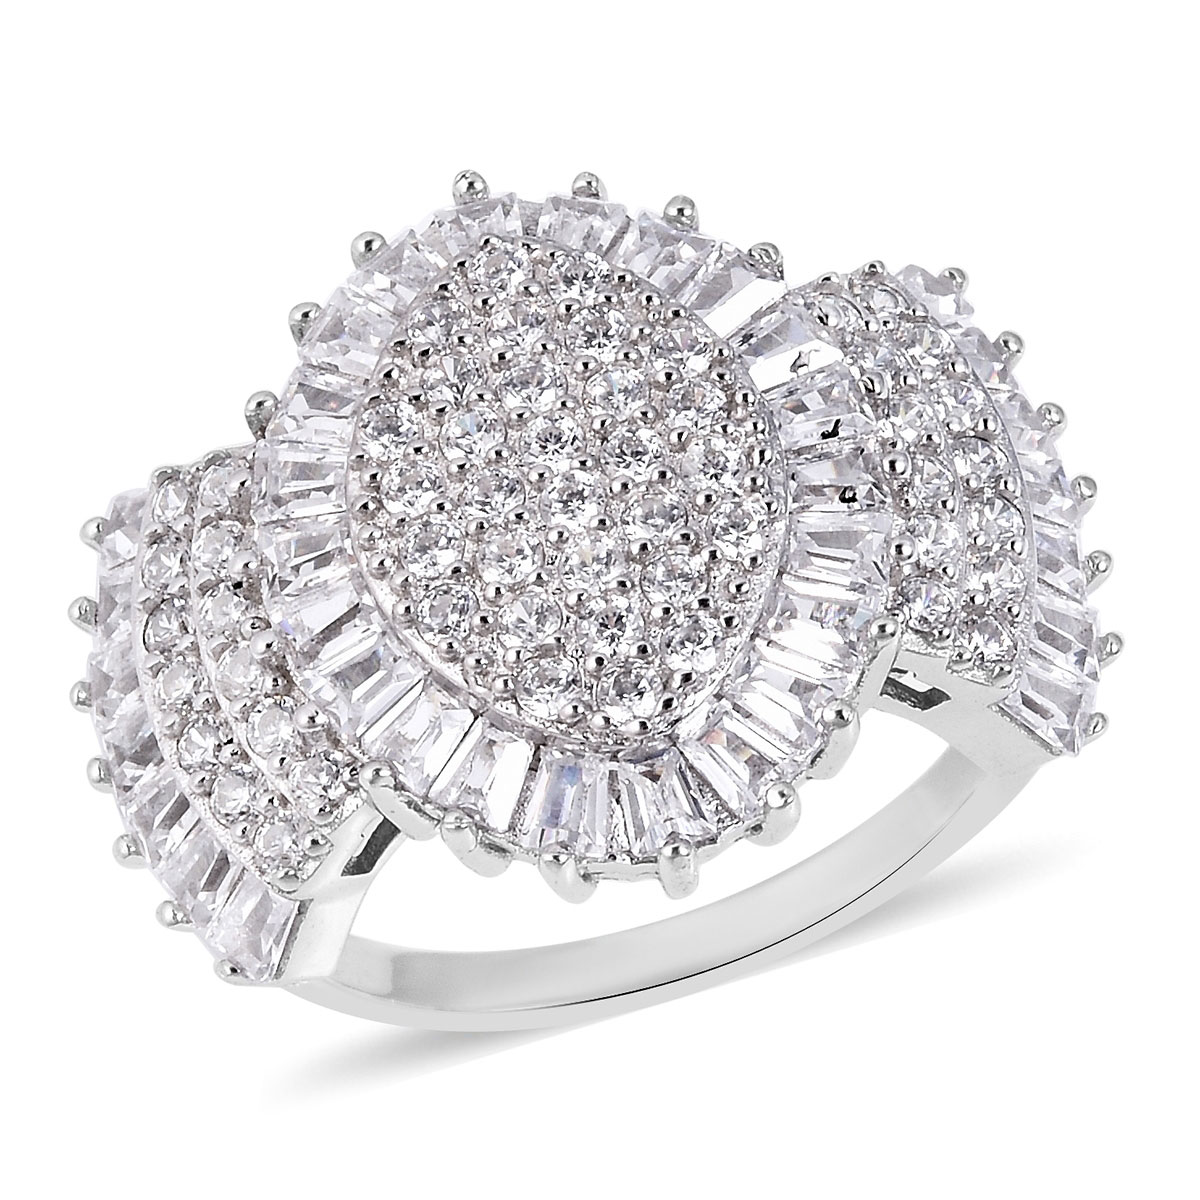 LUSTRO STELLA CZ Ring in Sterling Silver (Size 11.0) 3.56 ctw